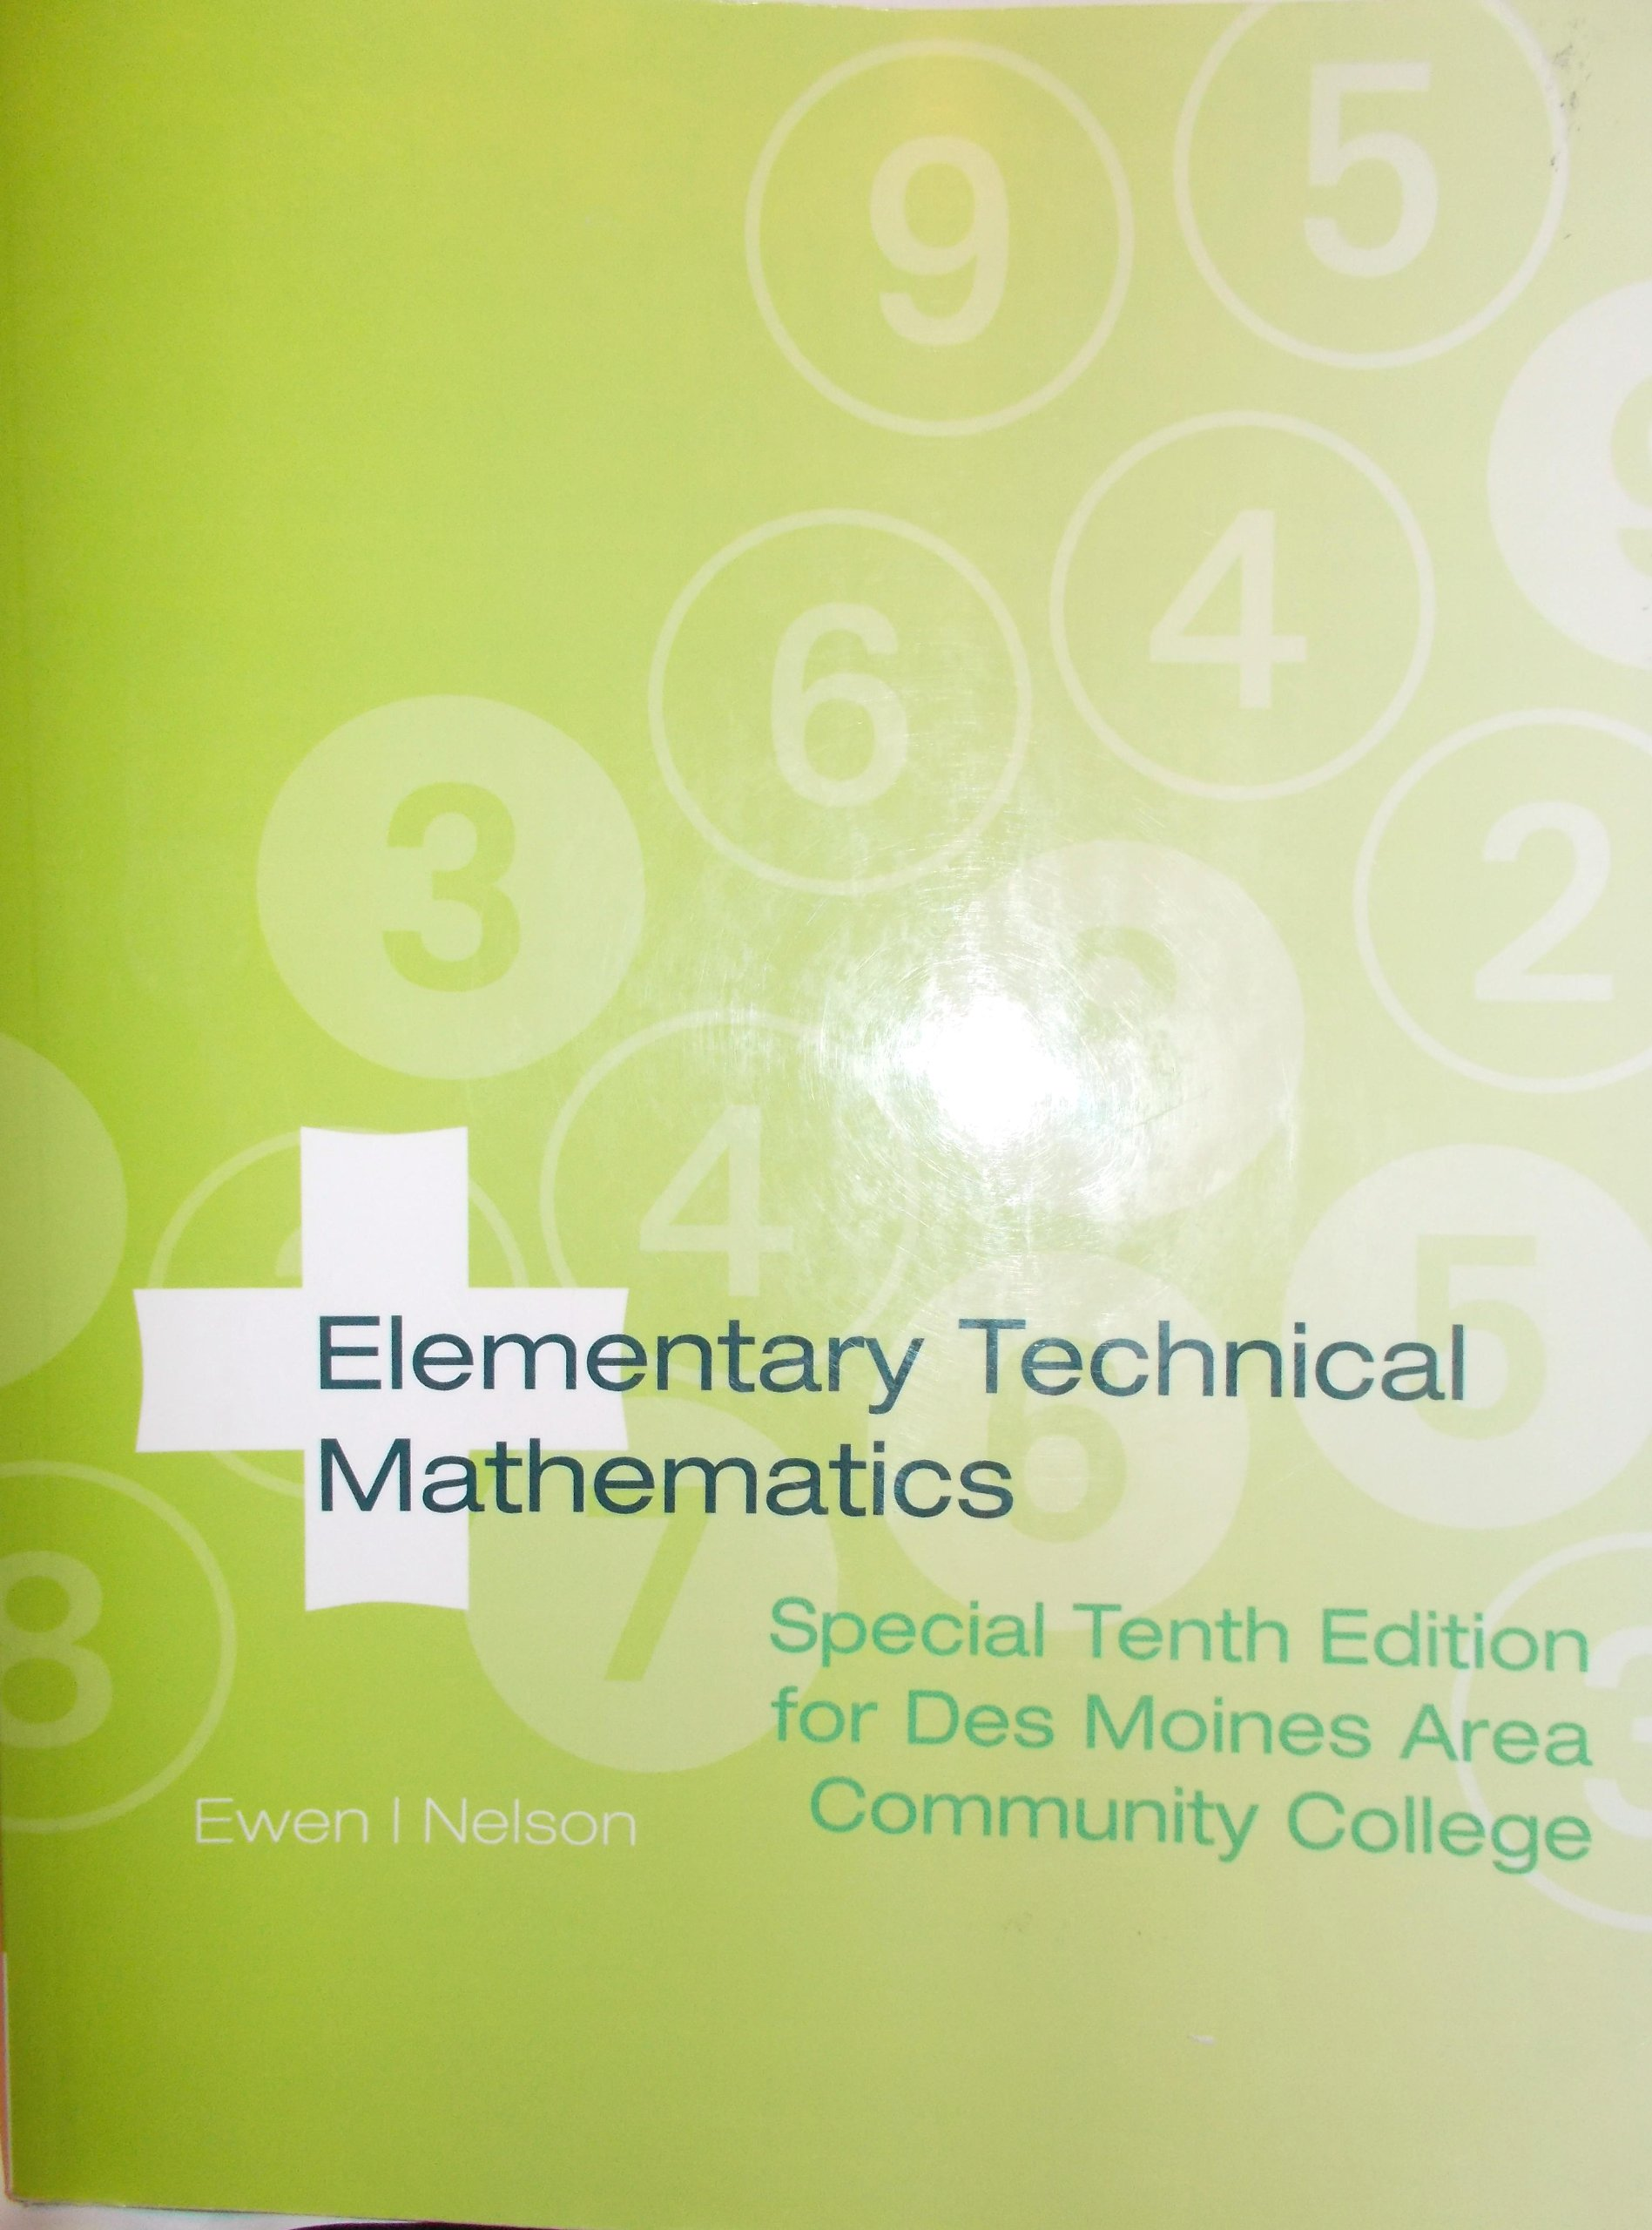 Download Elementary Technical Mathematics (Special Tenth Edition for Des Moines Area Community College) PDF